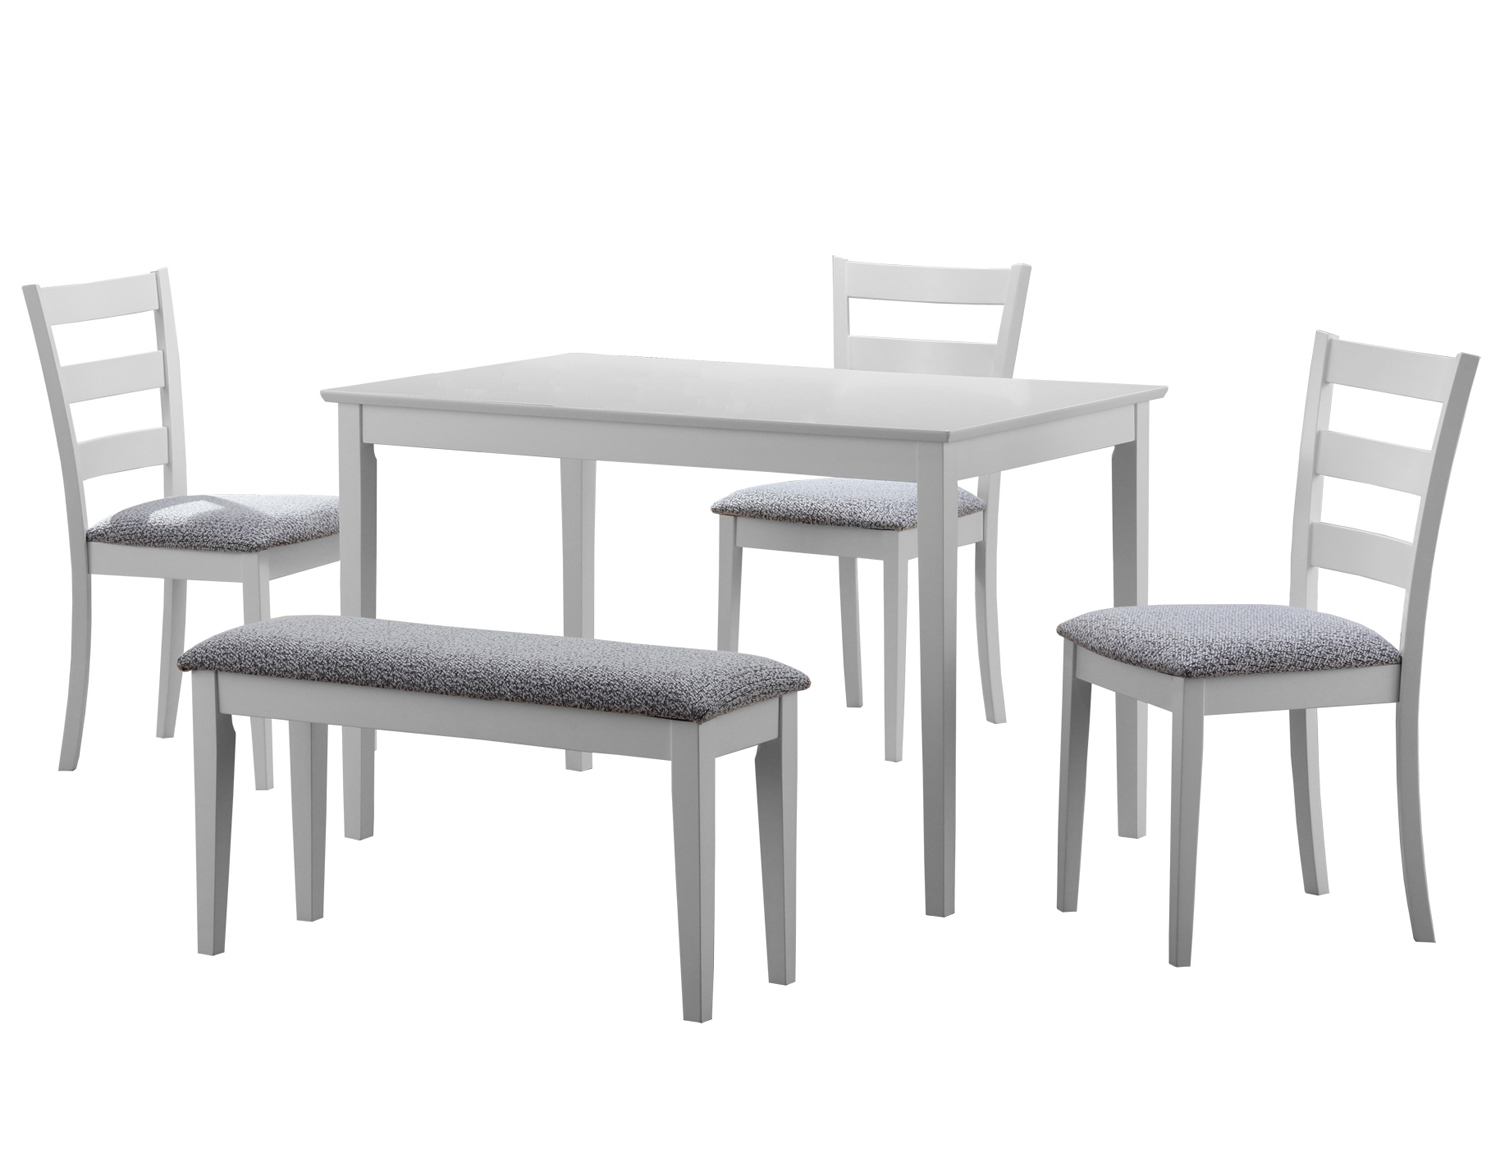 Dining Set - 5 Pieces Set / White Bench And 3 Side Chairs